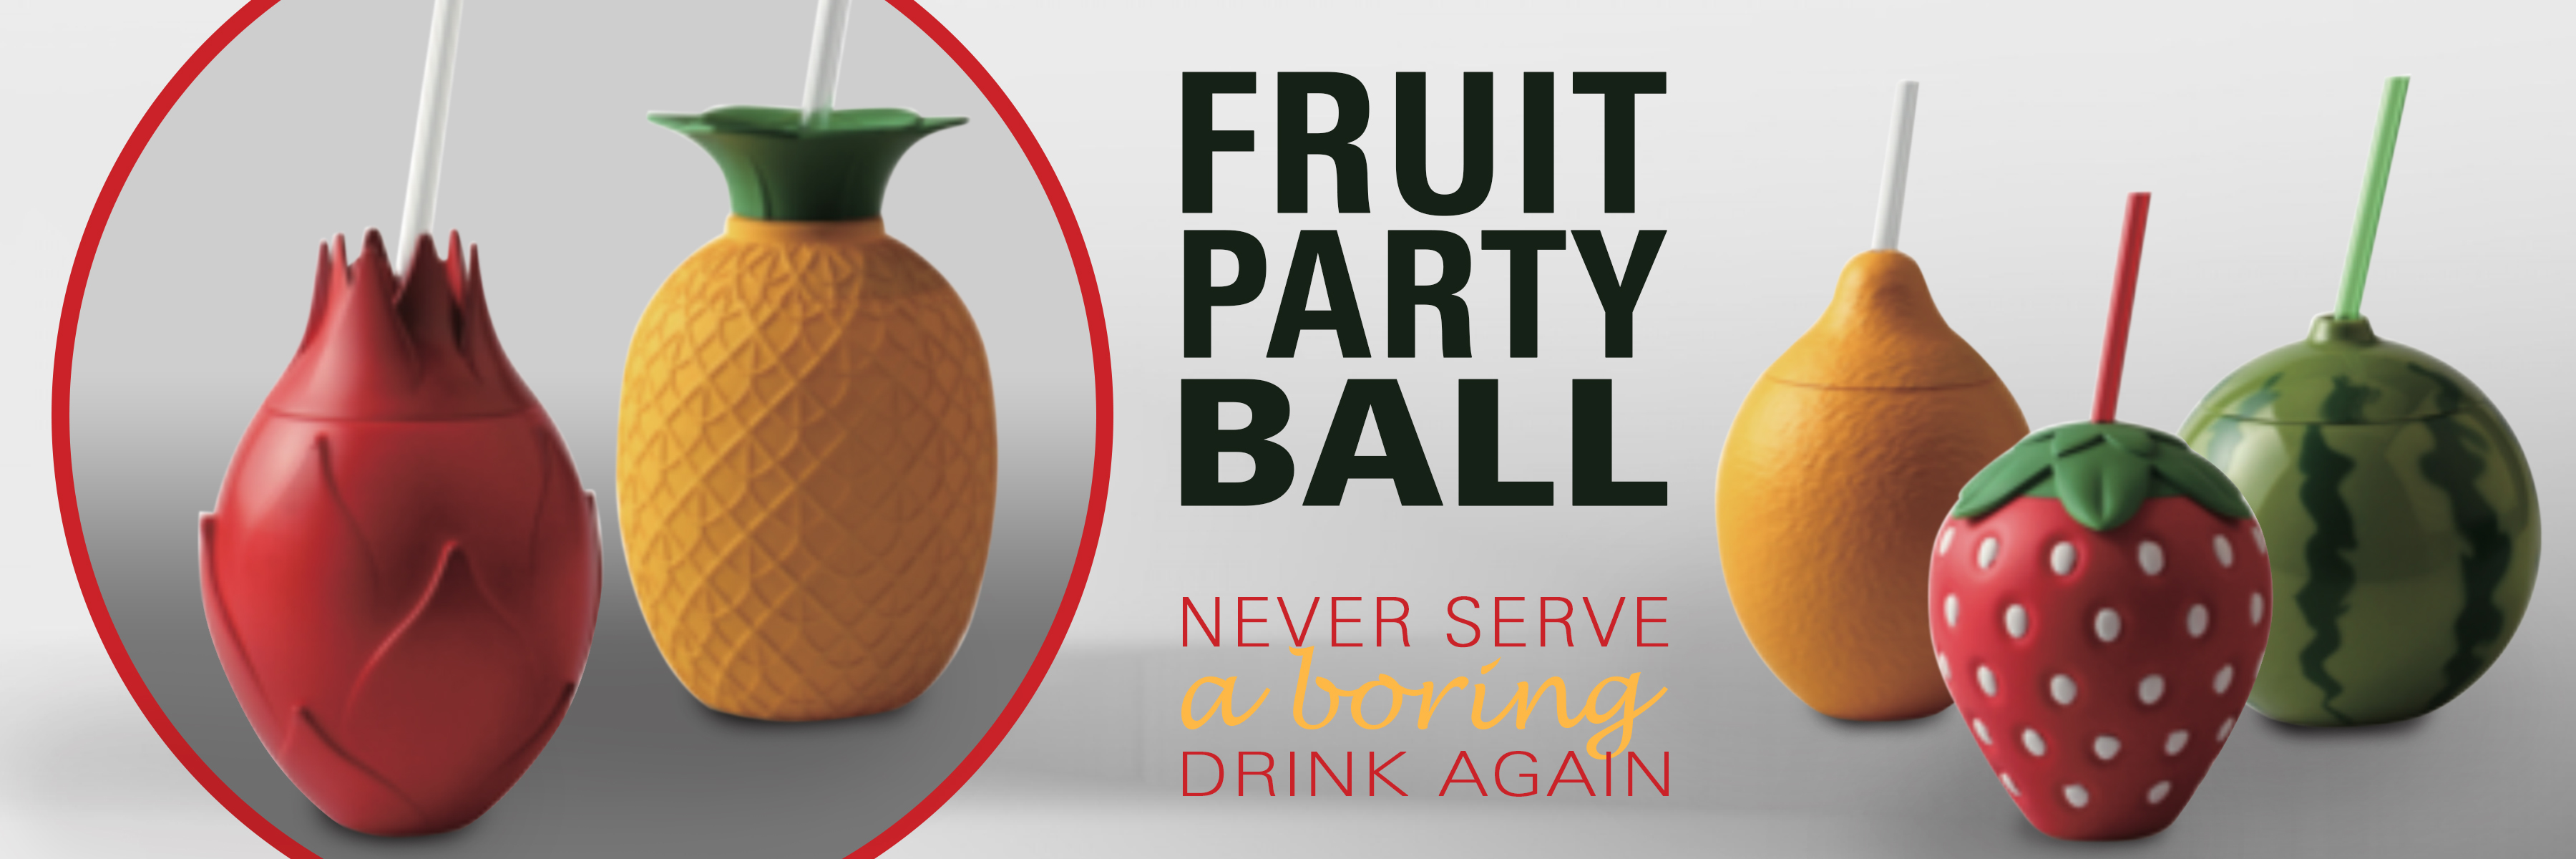 fruit party balls banner